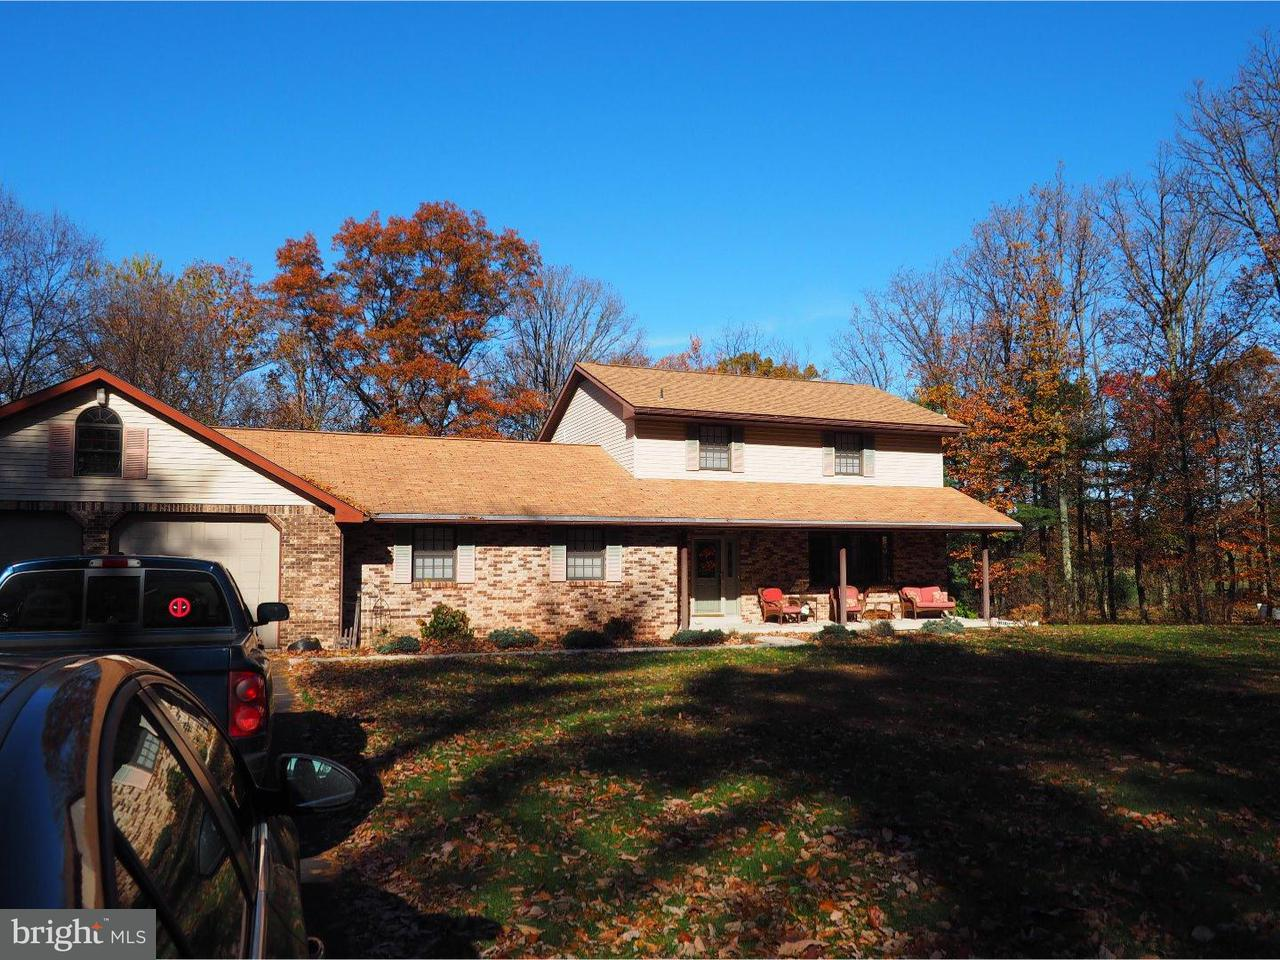 Single Family Home for Sale at 671 PINE HILL Road Andreas, Pennsylvania 18211 United States